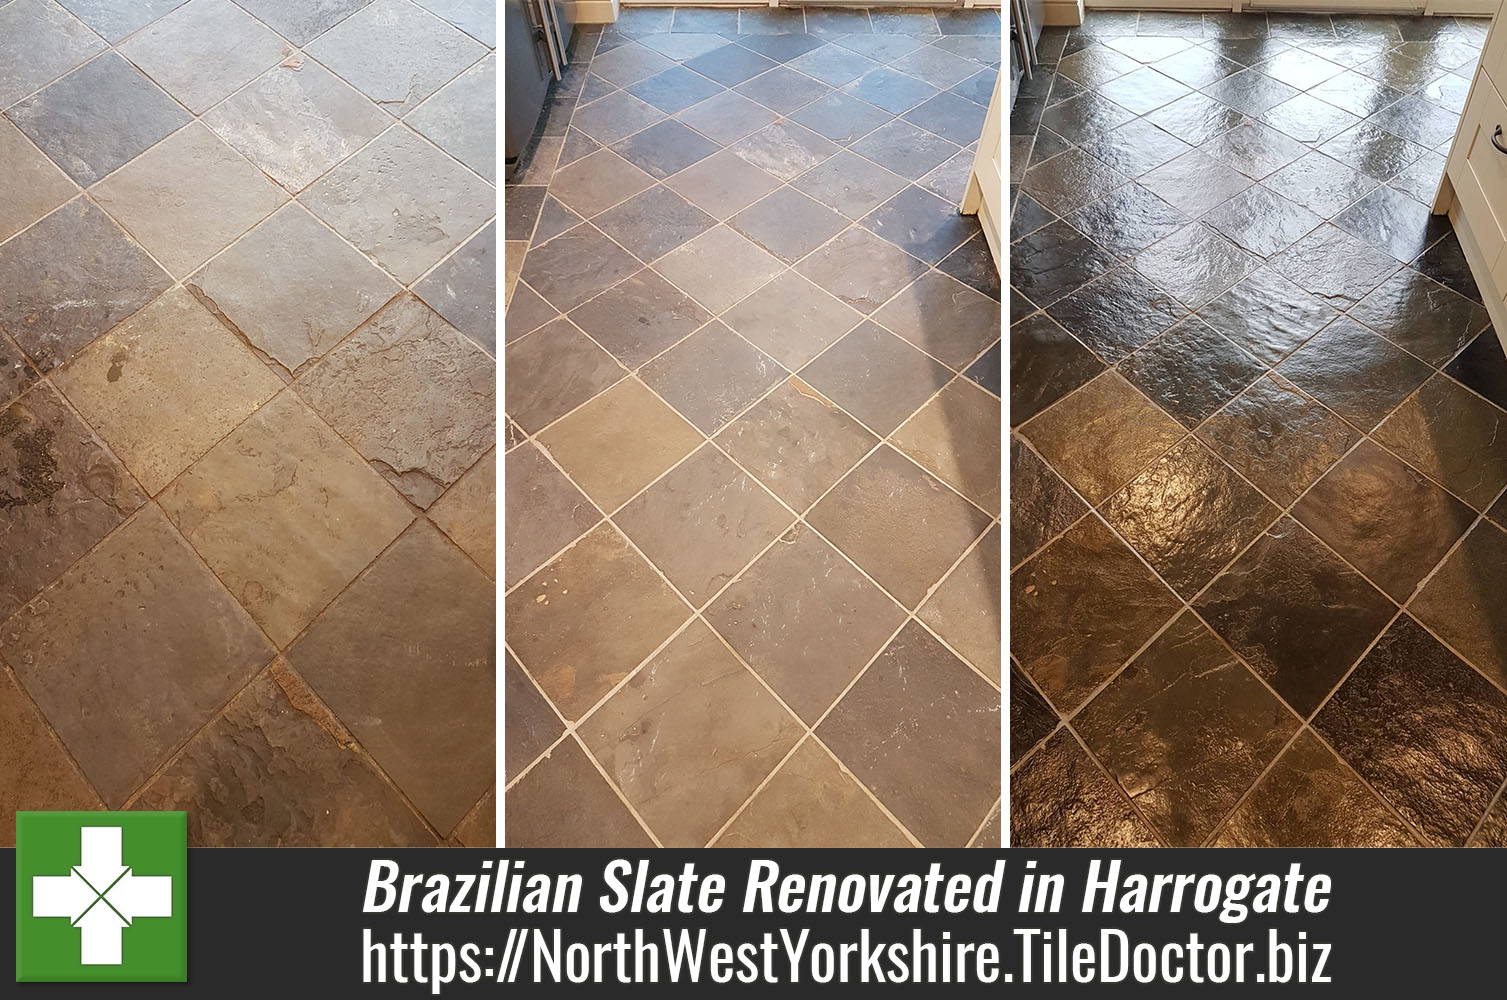 Renovating a Brazilian Slate Floor in a Harrogate Kitchen